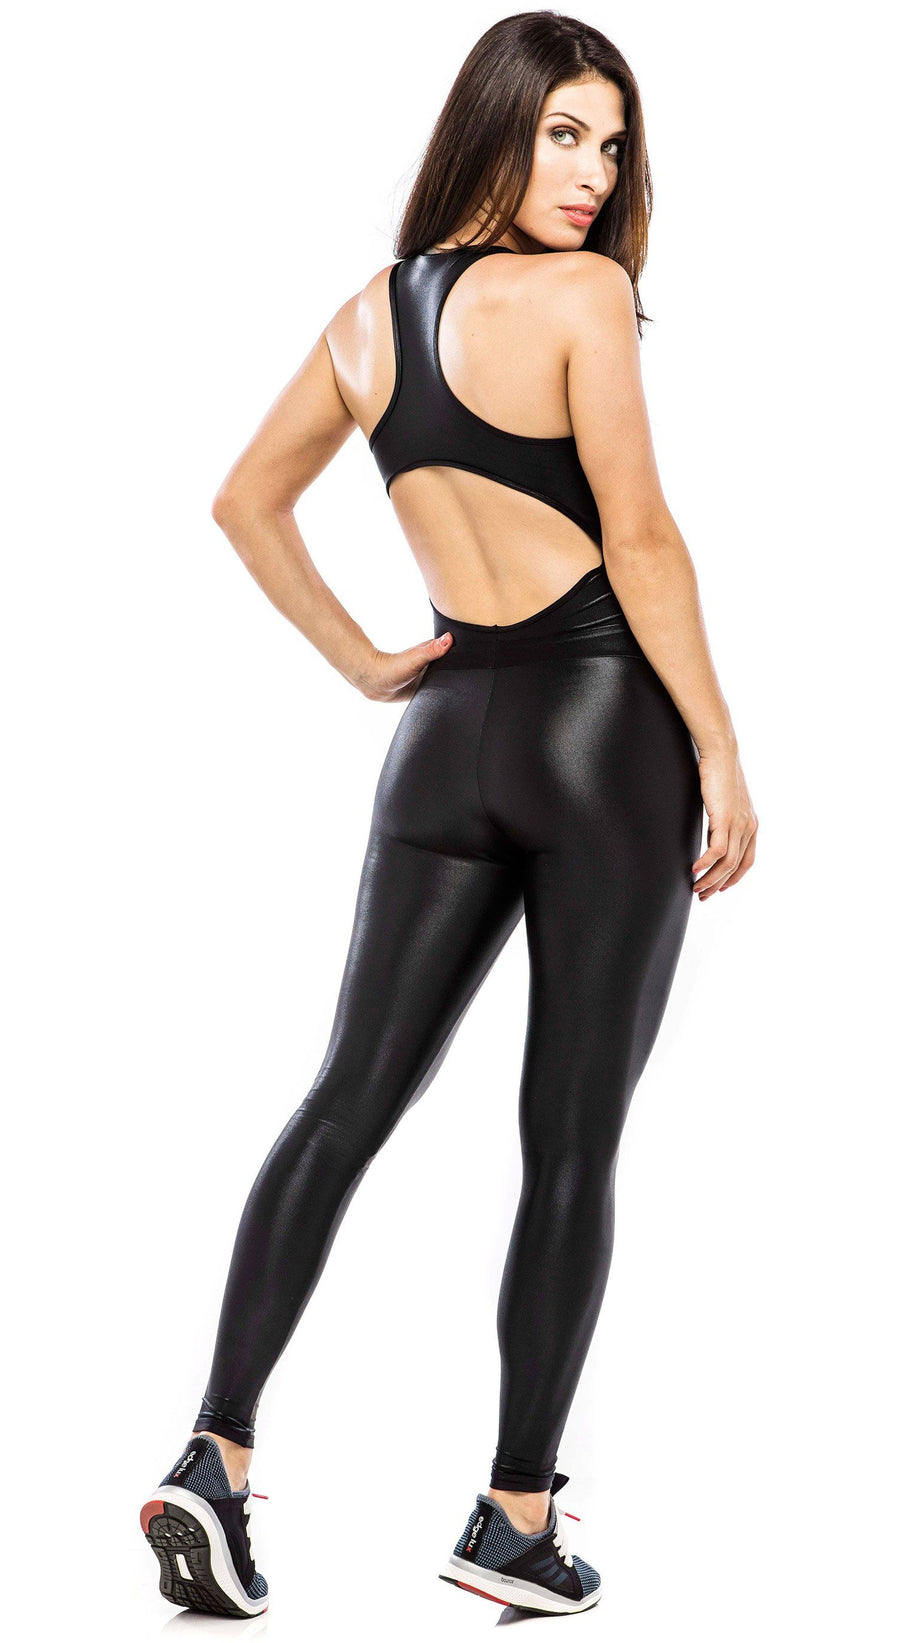 Brazilian Workout Jumpsuit - Metalla Black